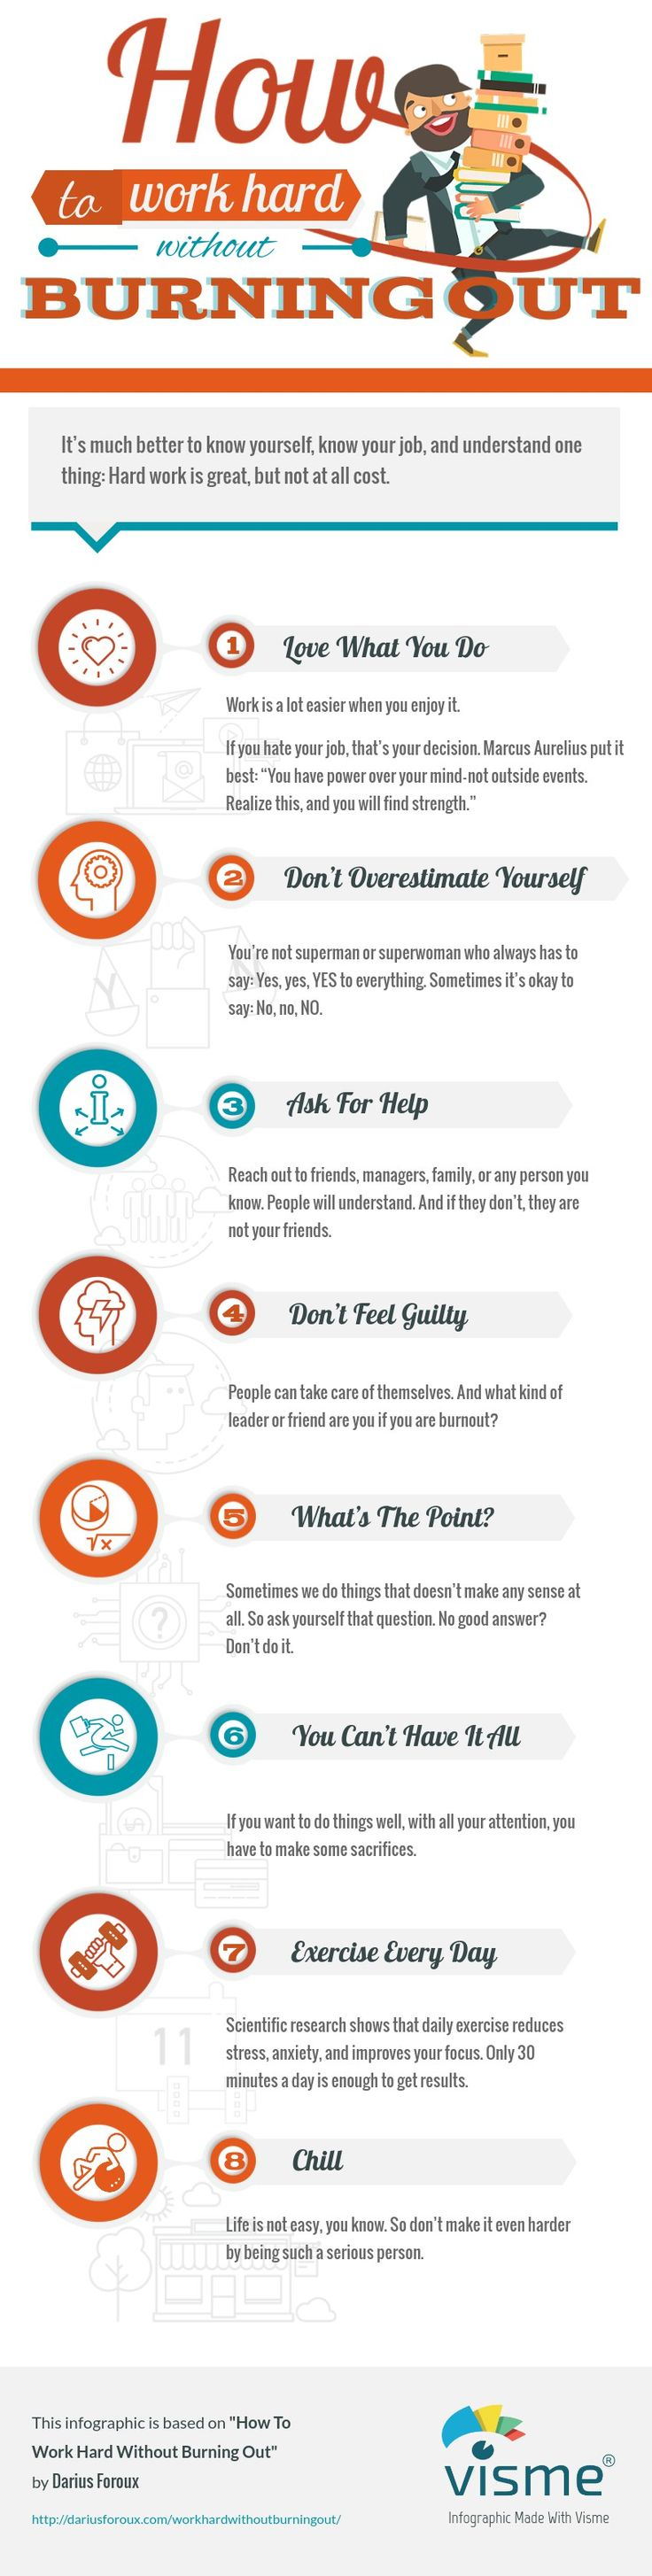 How To Work Hard Without Burning Out [Infographic]